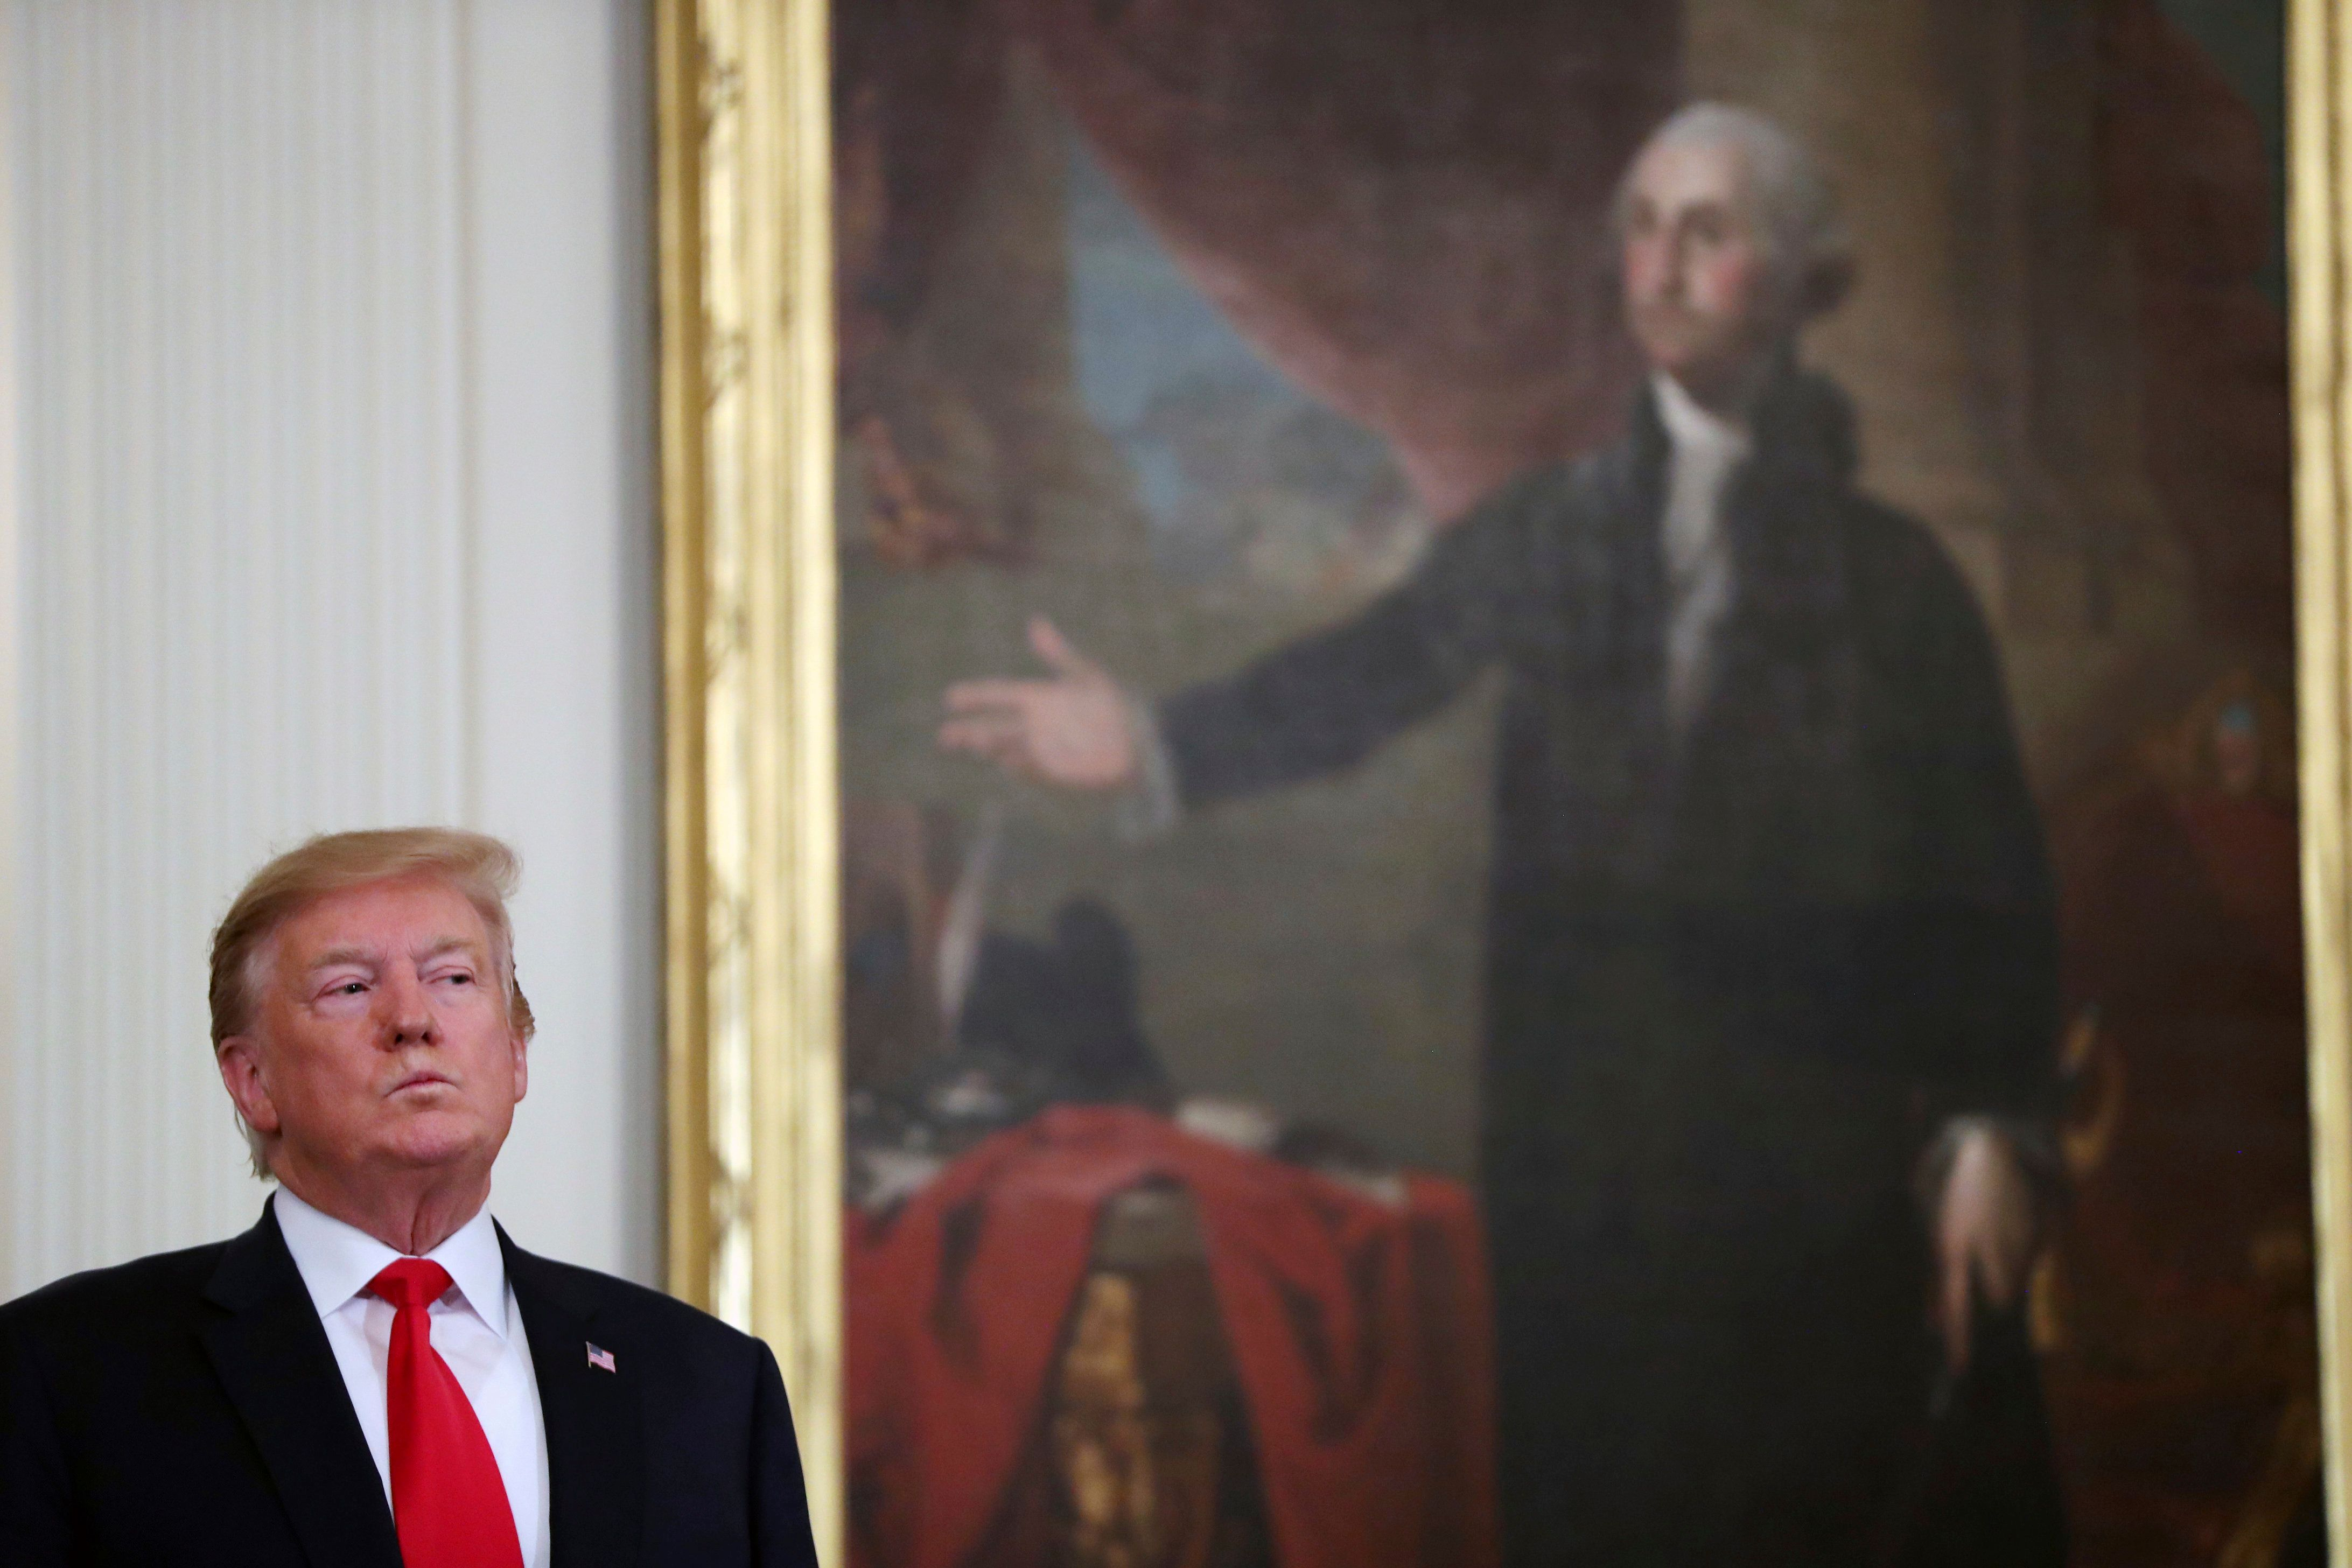 President Donald Trump stands near a portrait of George Washington at a Wounded Warrior Project Soldier Ride event in the East Room of the White House, Thursday, April 18, 2019, in Washington. (AP Photo/Andrew Harnik)